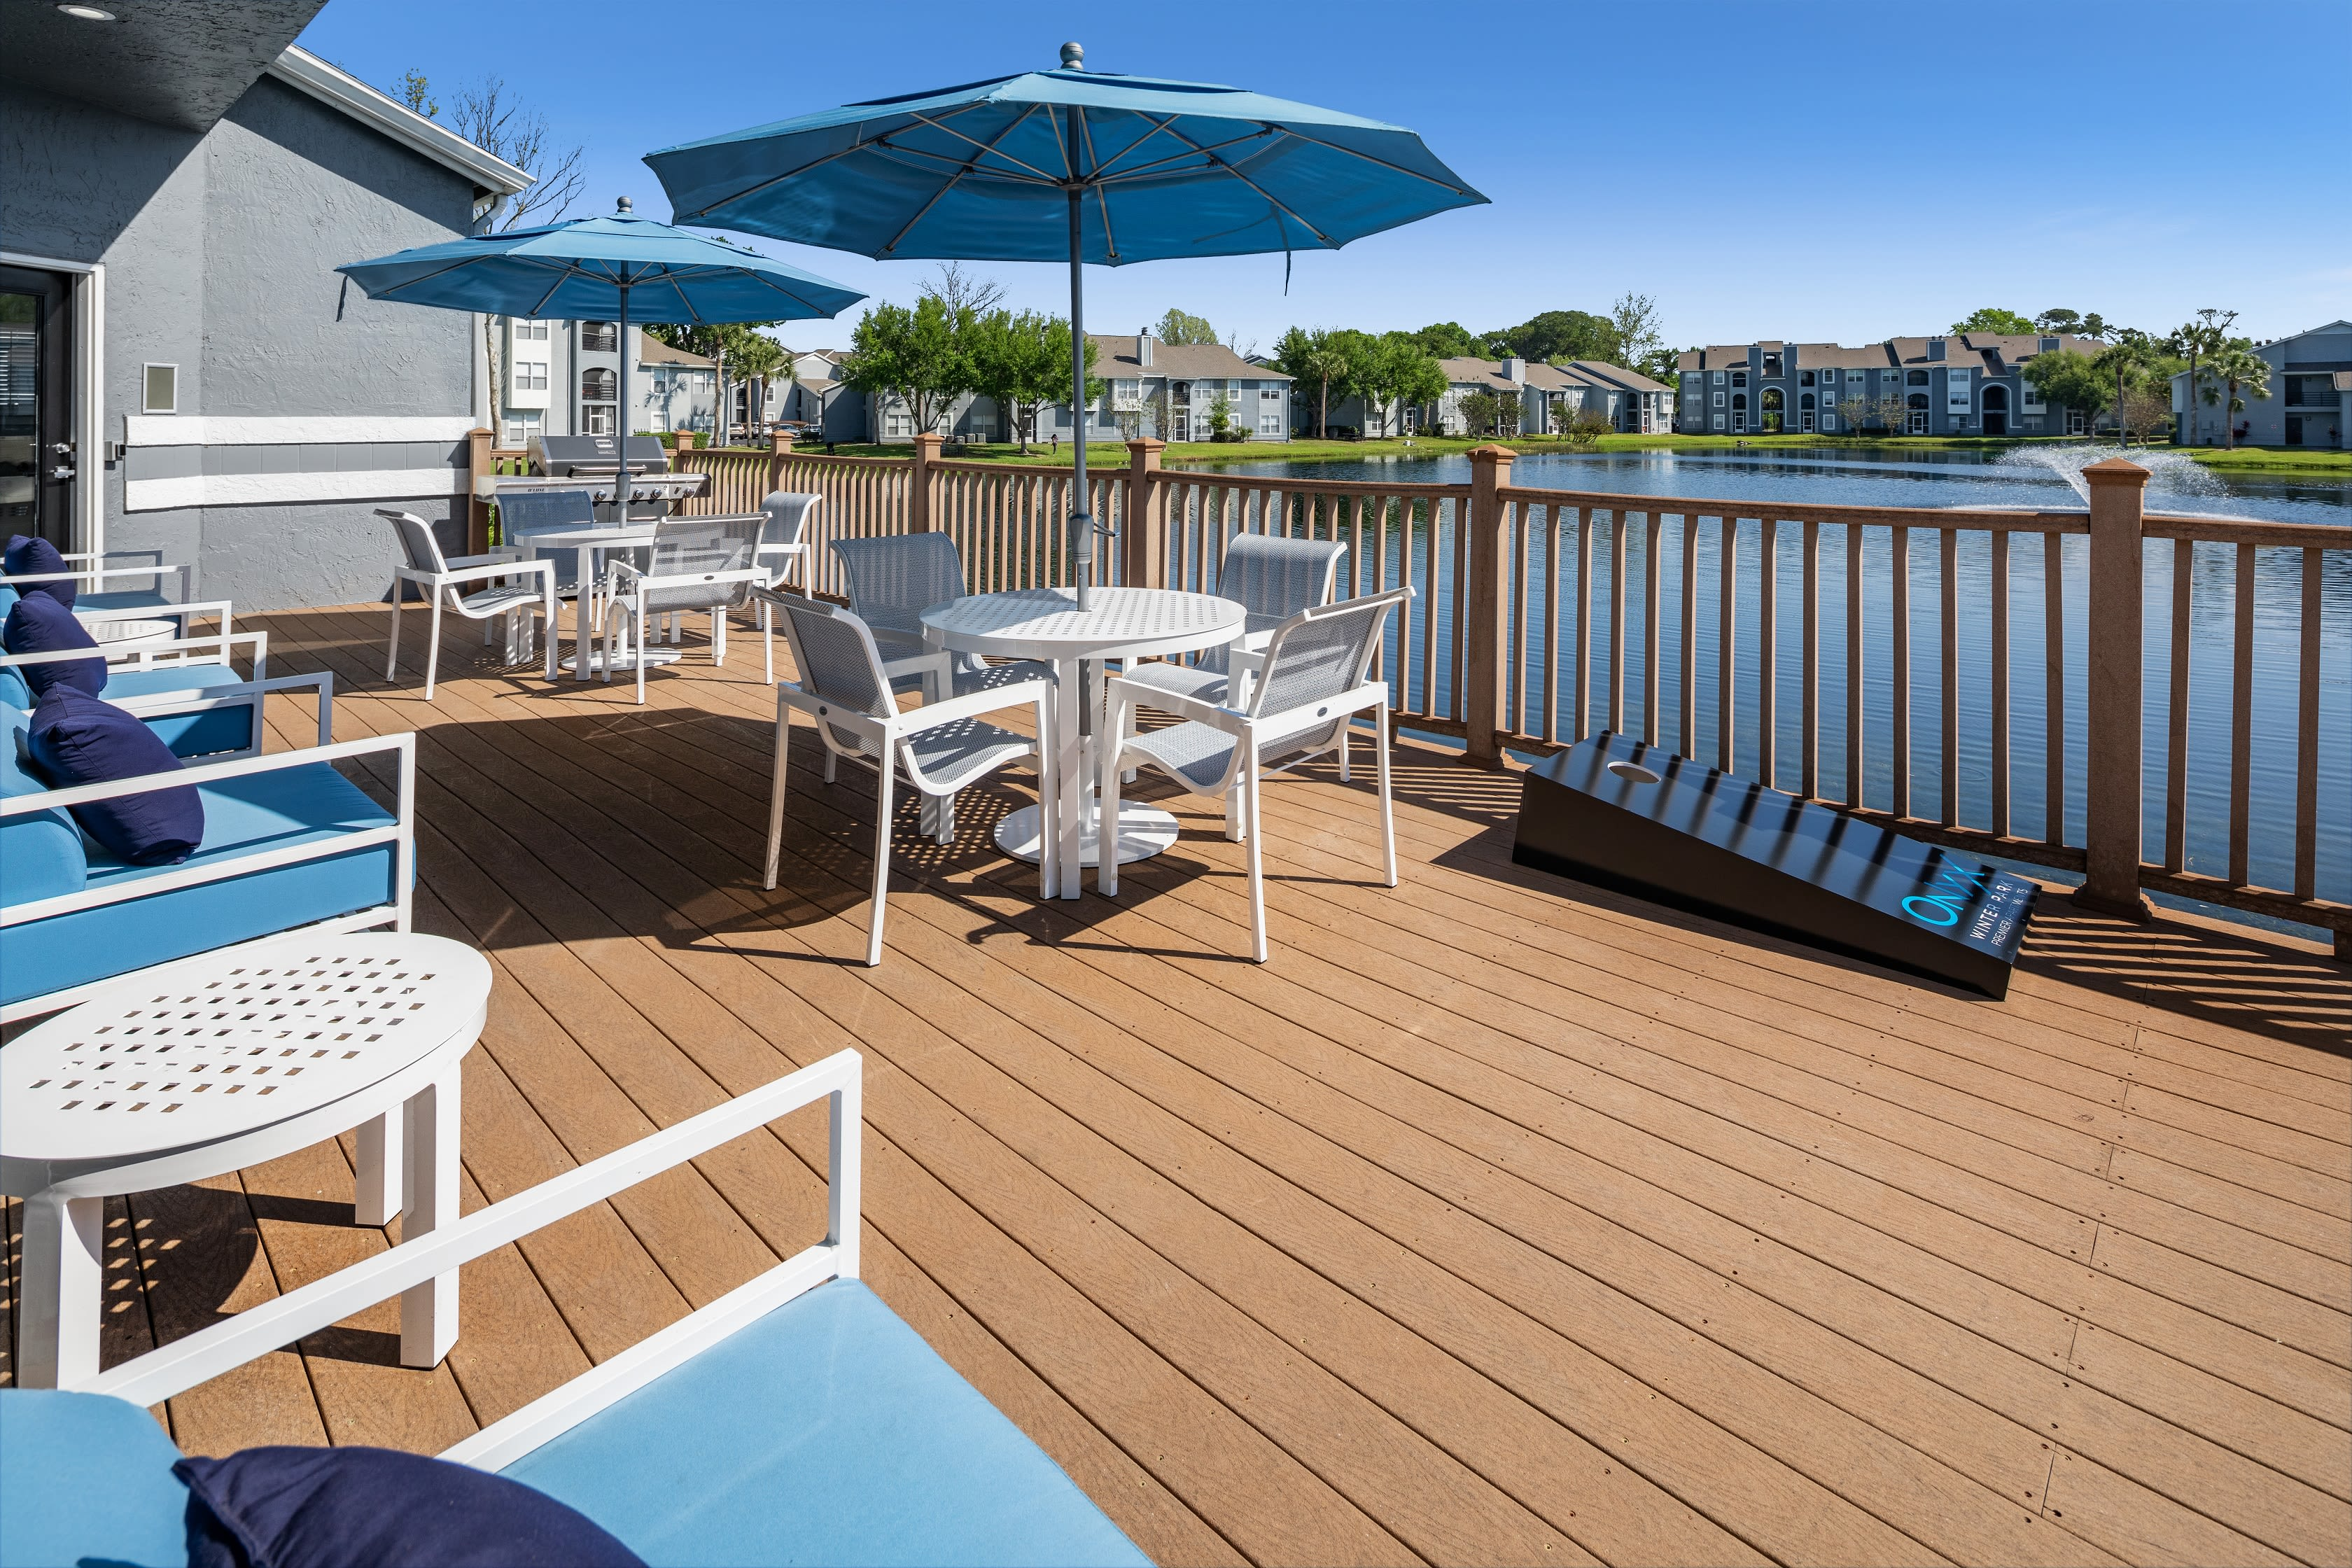 The dock with patio furniture at Onyx Winter Park in Casselberry, FL